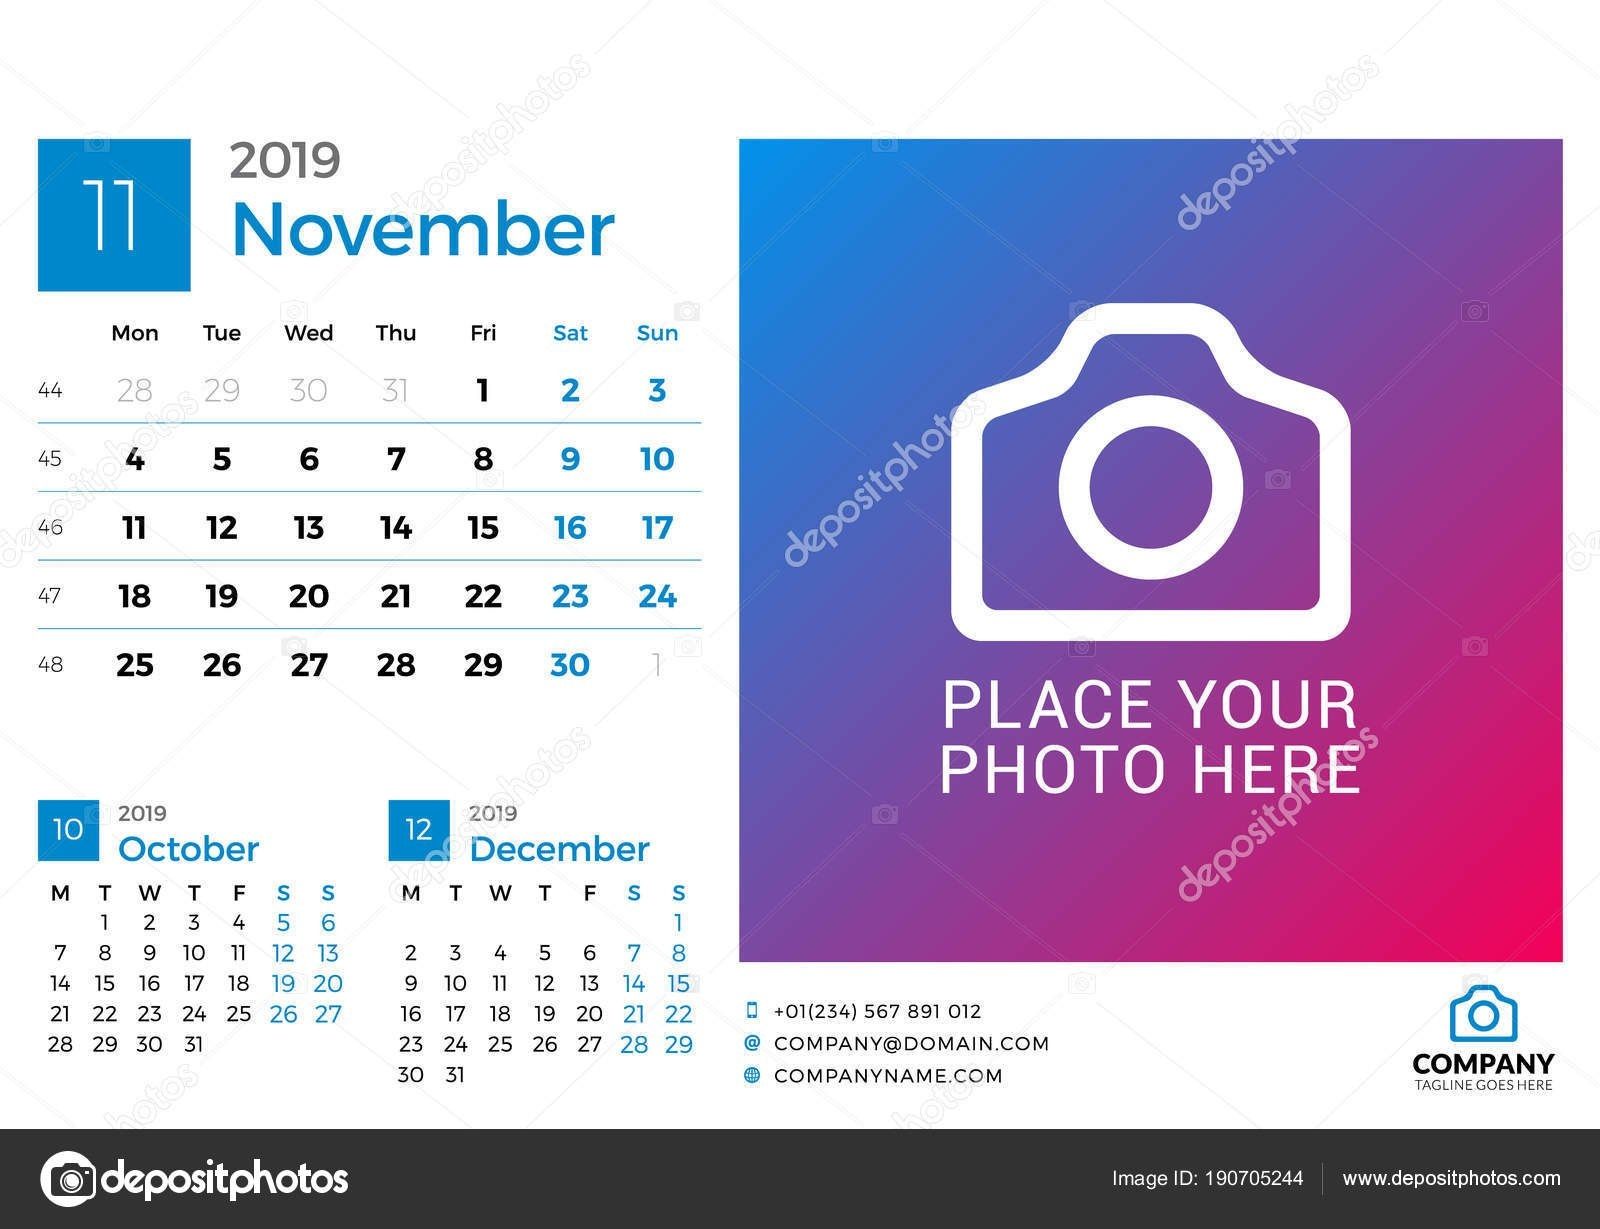 Calendar For November 2019. Vector Design Print Template With Place Calendar Week 46 2019